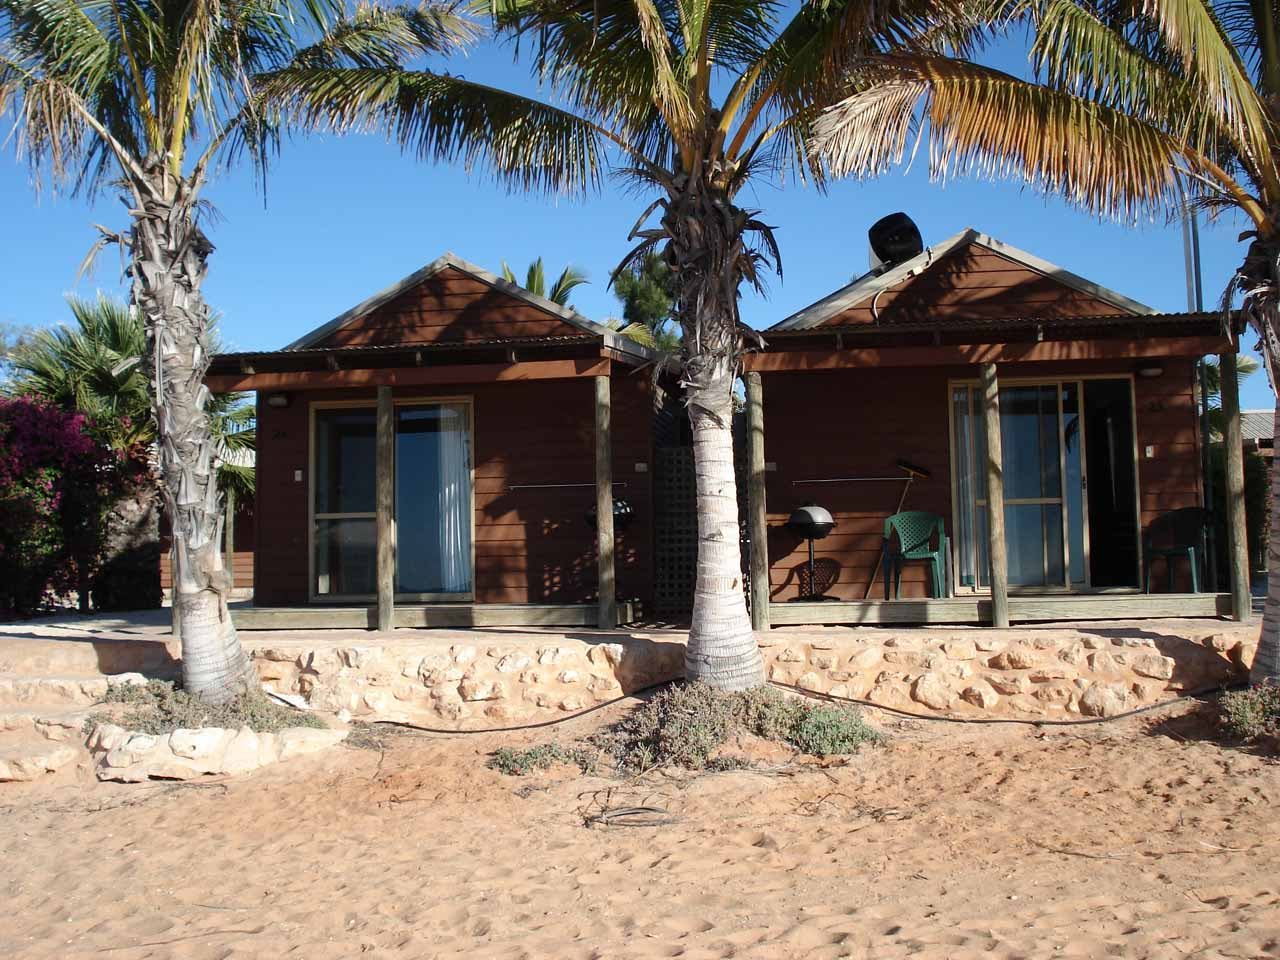 Our accommodation at Monkey Mia